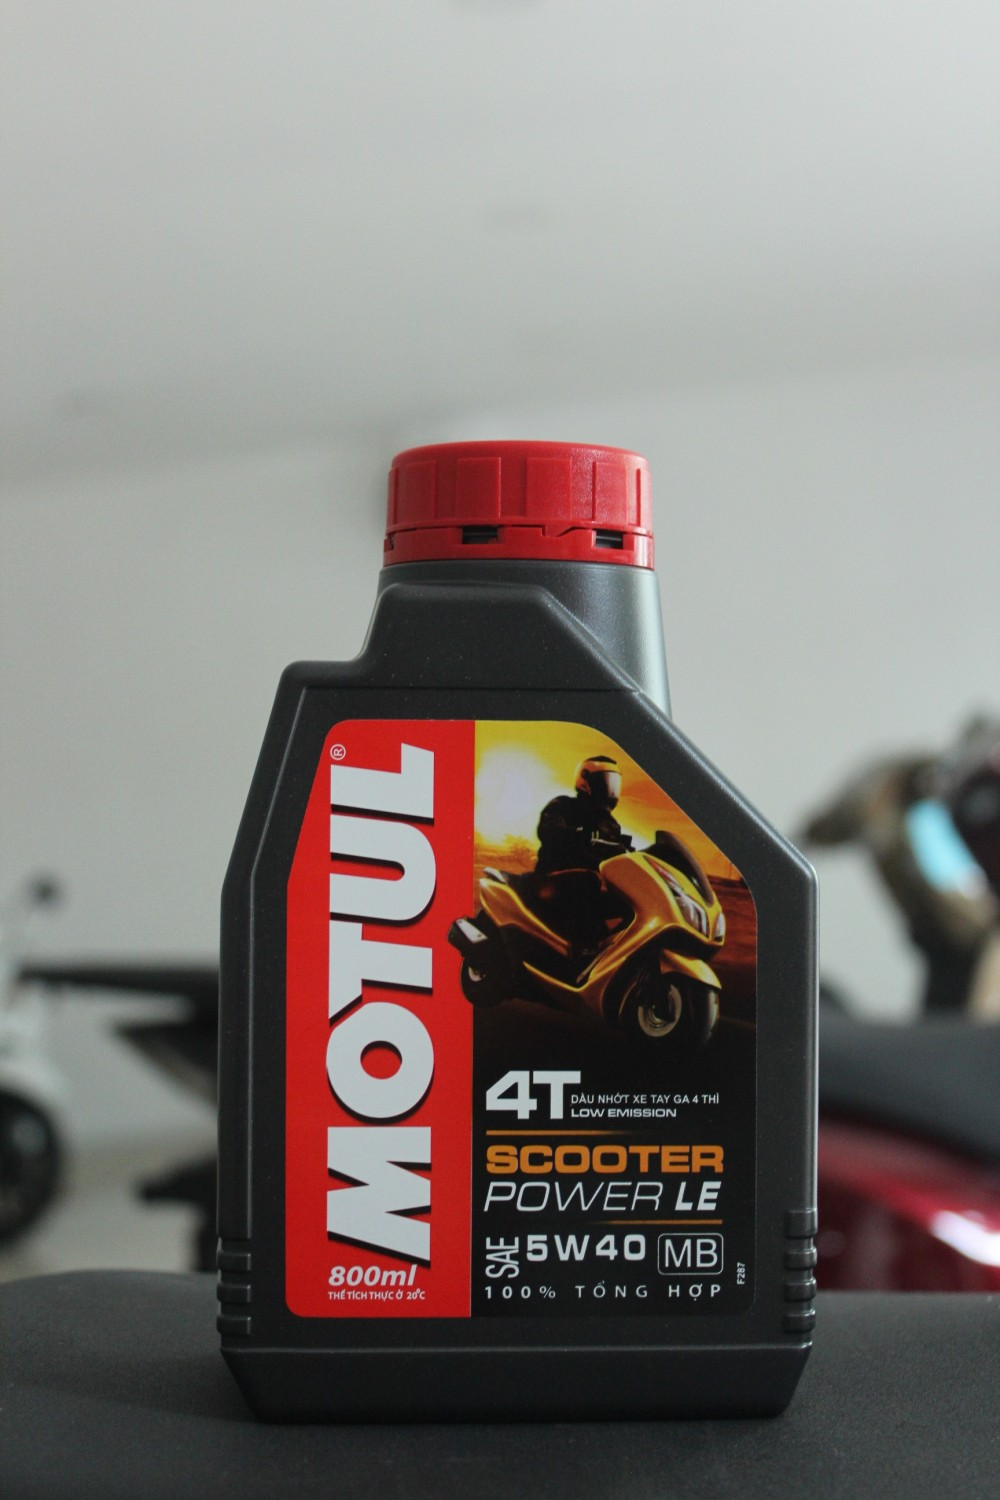 Motul scooter power le 5w40 08l - 1